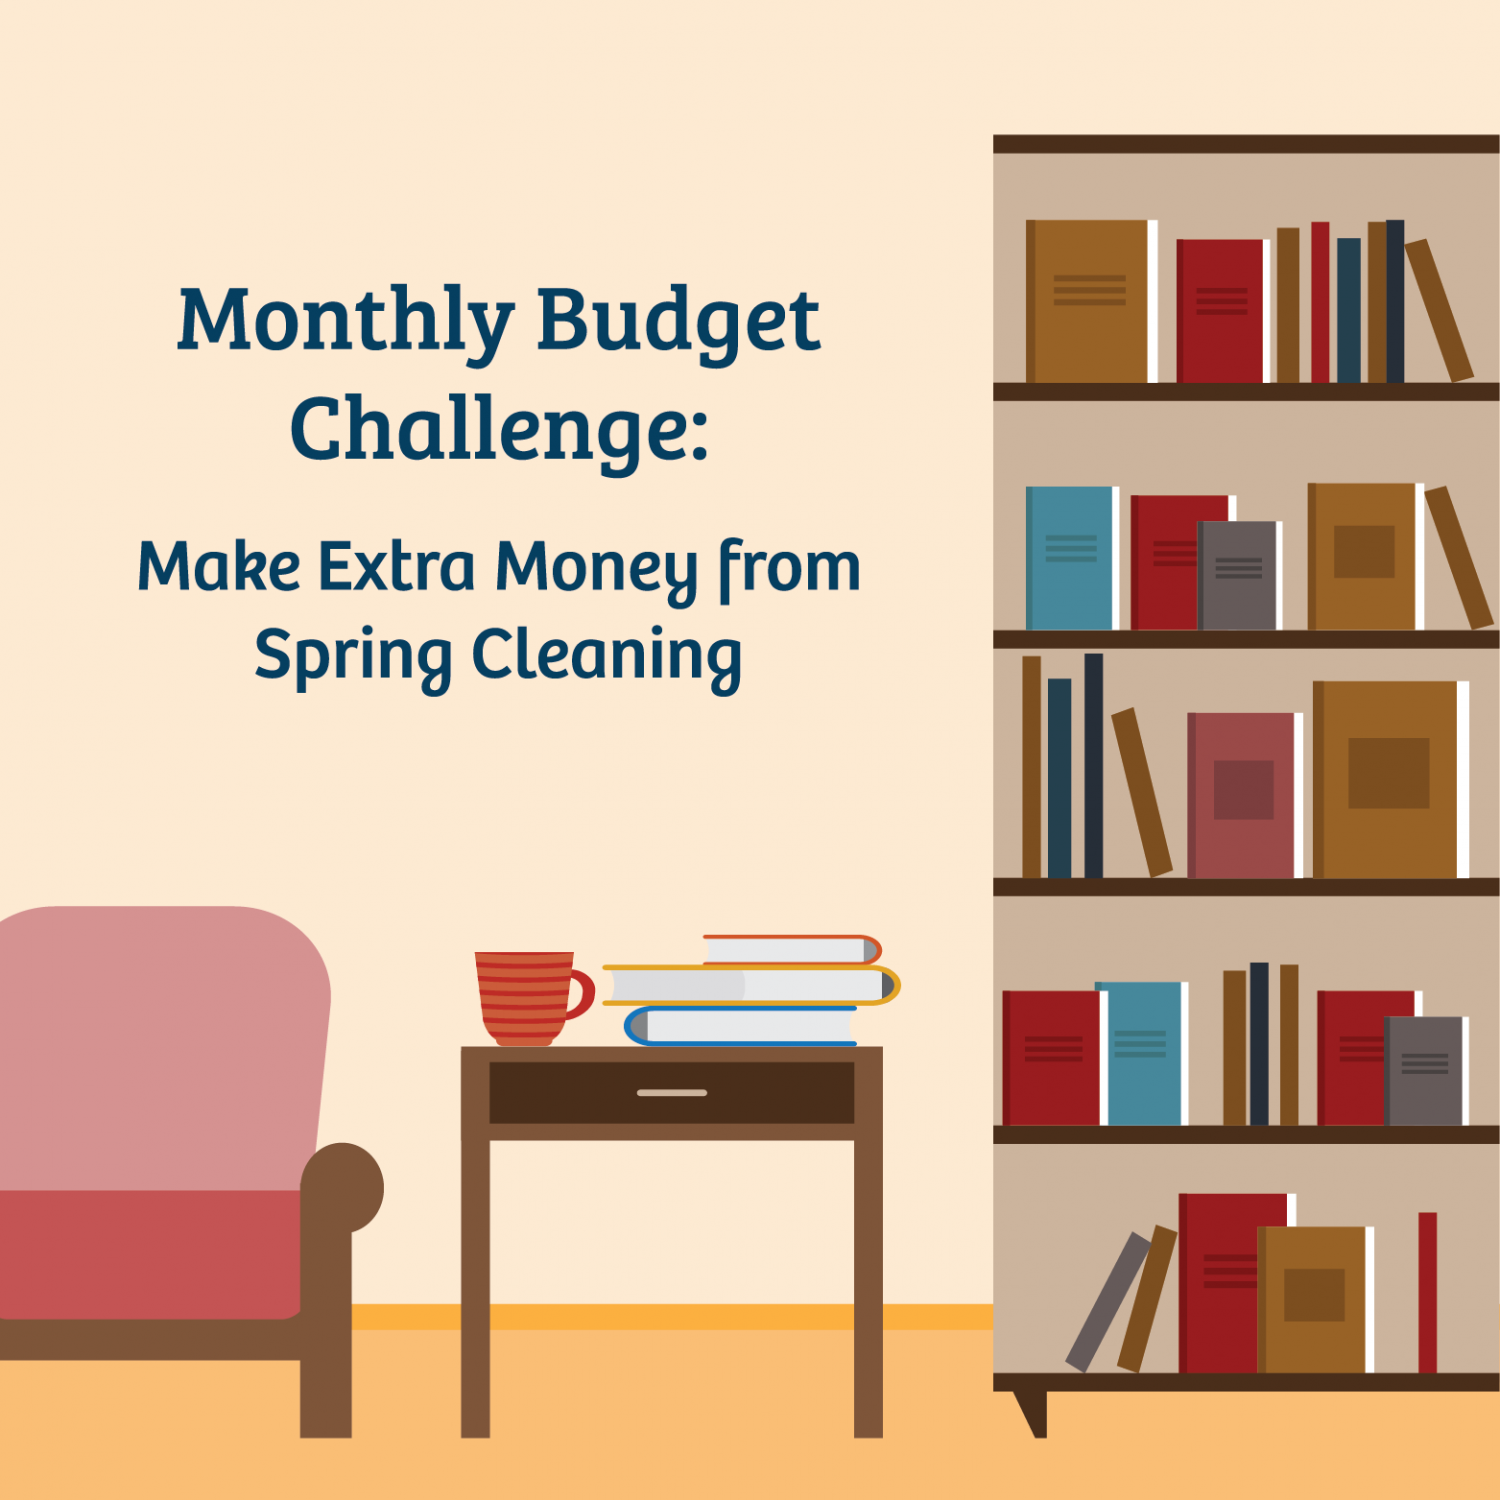 Monthly Budget Challenge: Make Extra Money from Spring Cleaning Infographic